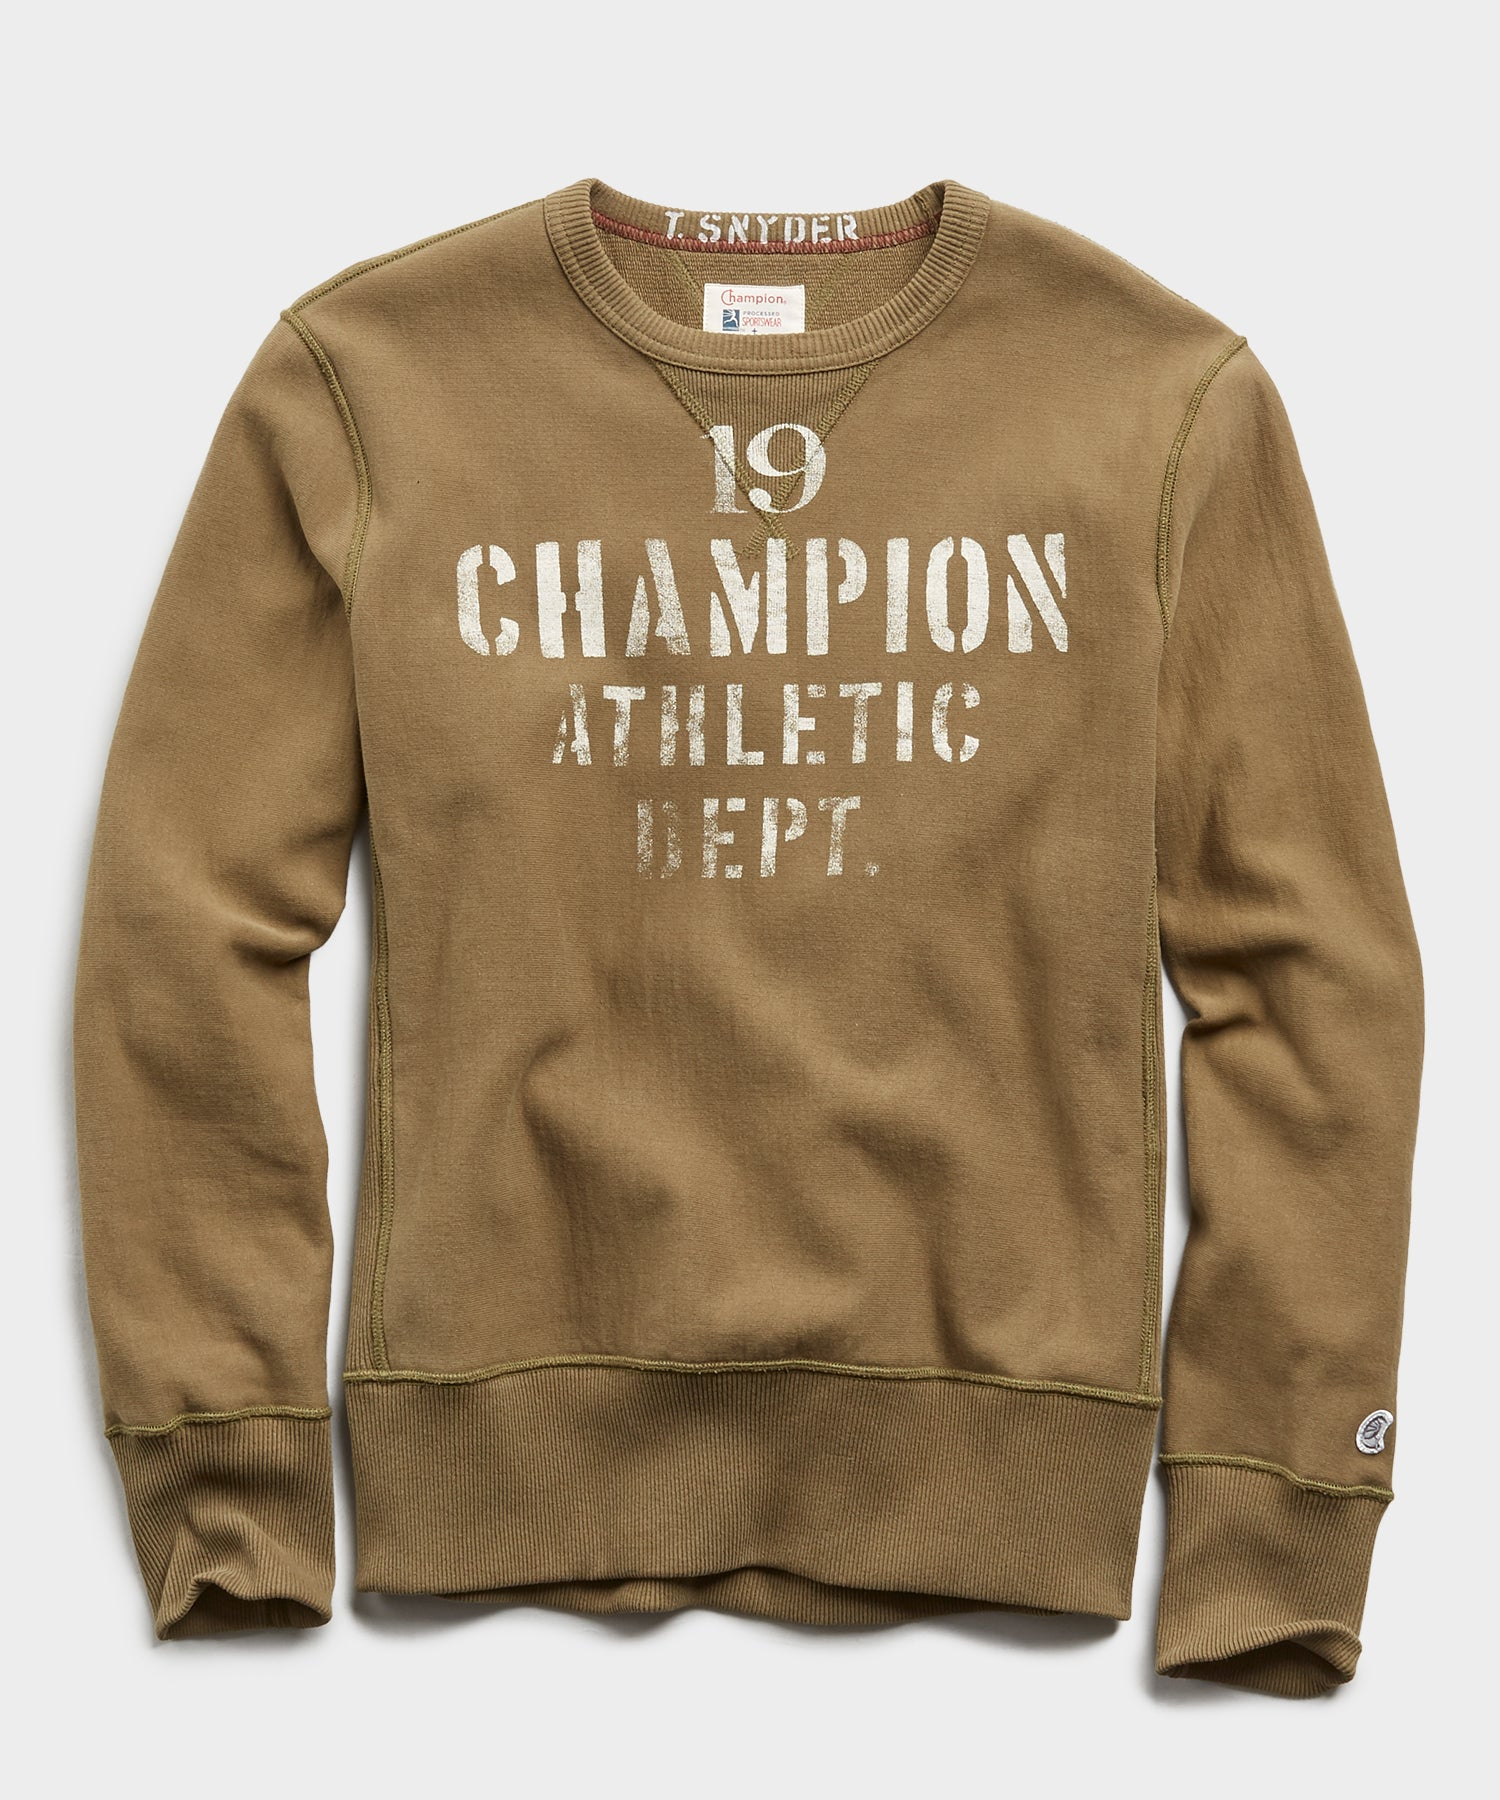 Champion 19 Athletic Dept. Sweatshirt in Fatigue Green